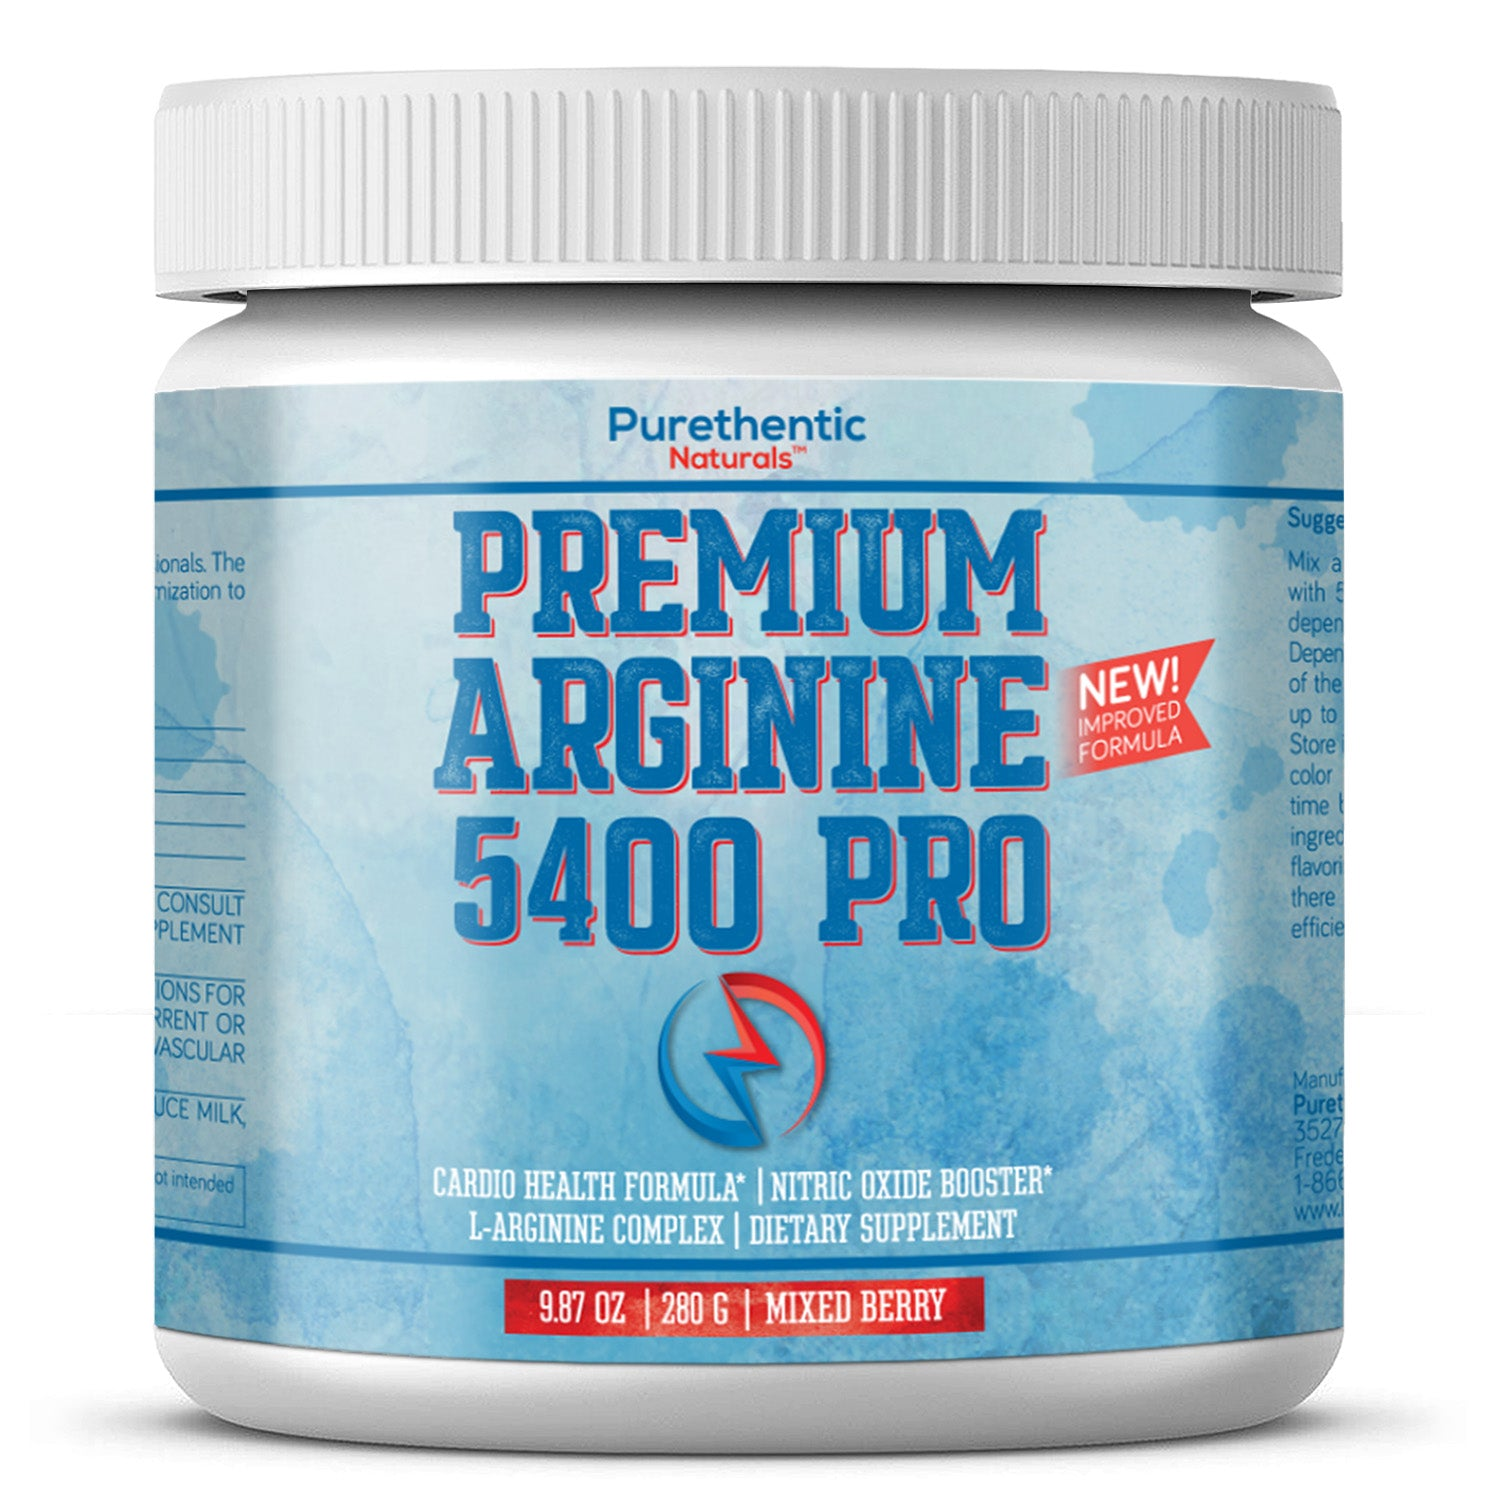 L­ Arginine Powder 5400mg — Nitric Oxide Powder - Citrulline 1000mg - Purethentic Naturals Arginine 5400 Pro